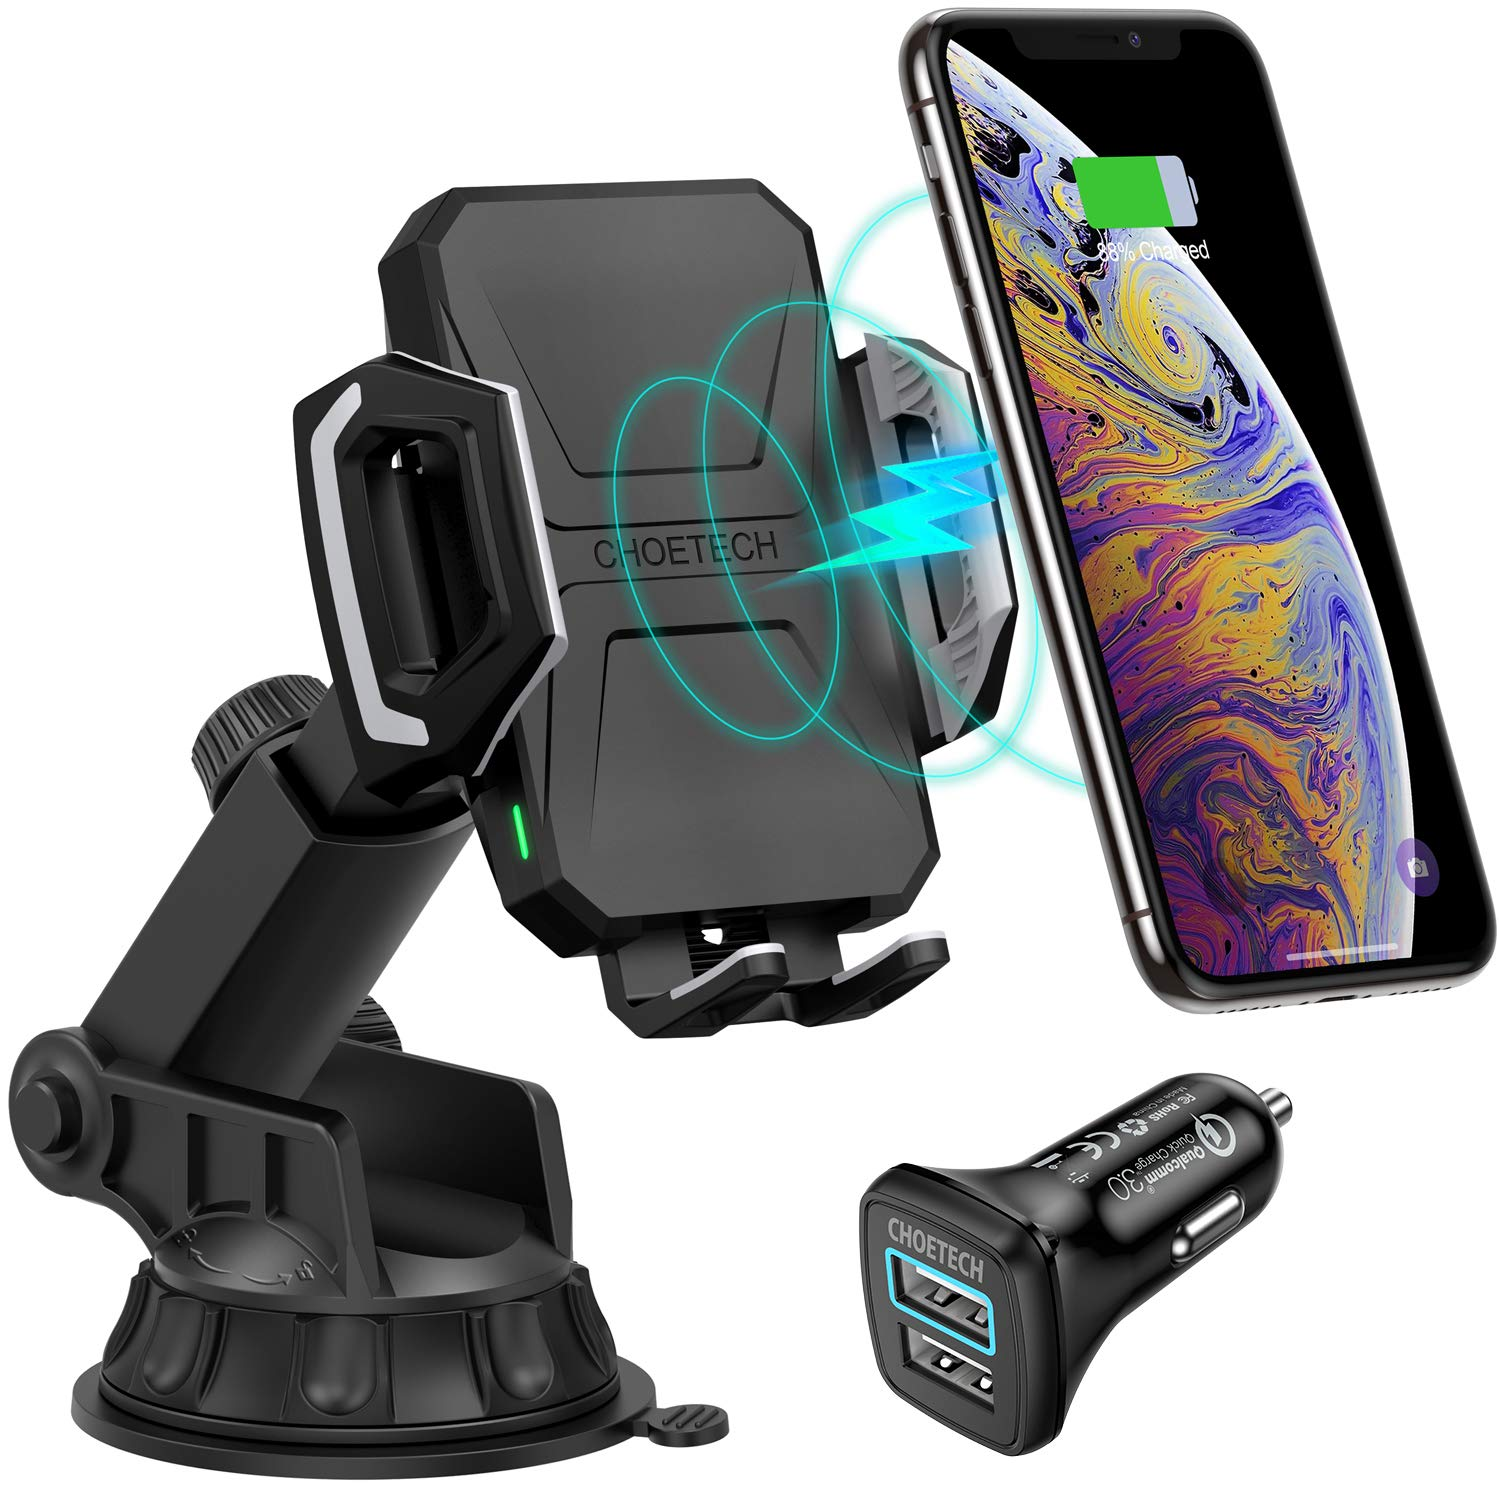 CHOETECH Wireless Car Charger, 10W/7.5W Qi Wireless Fast Charging Car Mount USB-C Phone Holder Compatible with iPhone Xs/XS Max/XR/X/8/8+, Samsung Note 10/S10/S10+/Note 9/S9/S8(Car Charger Included) by CHOETECH